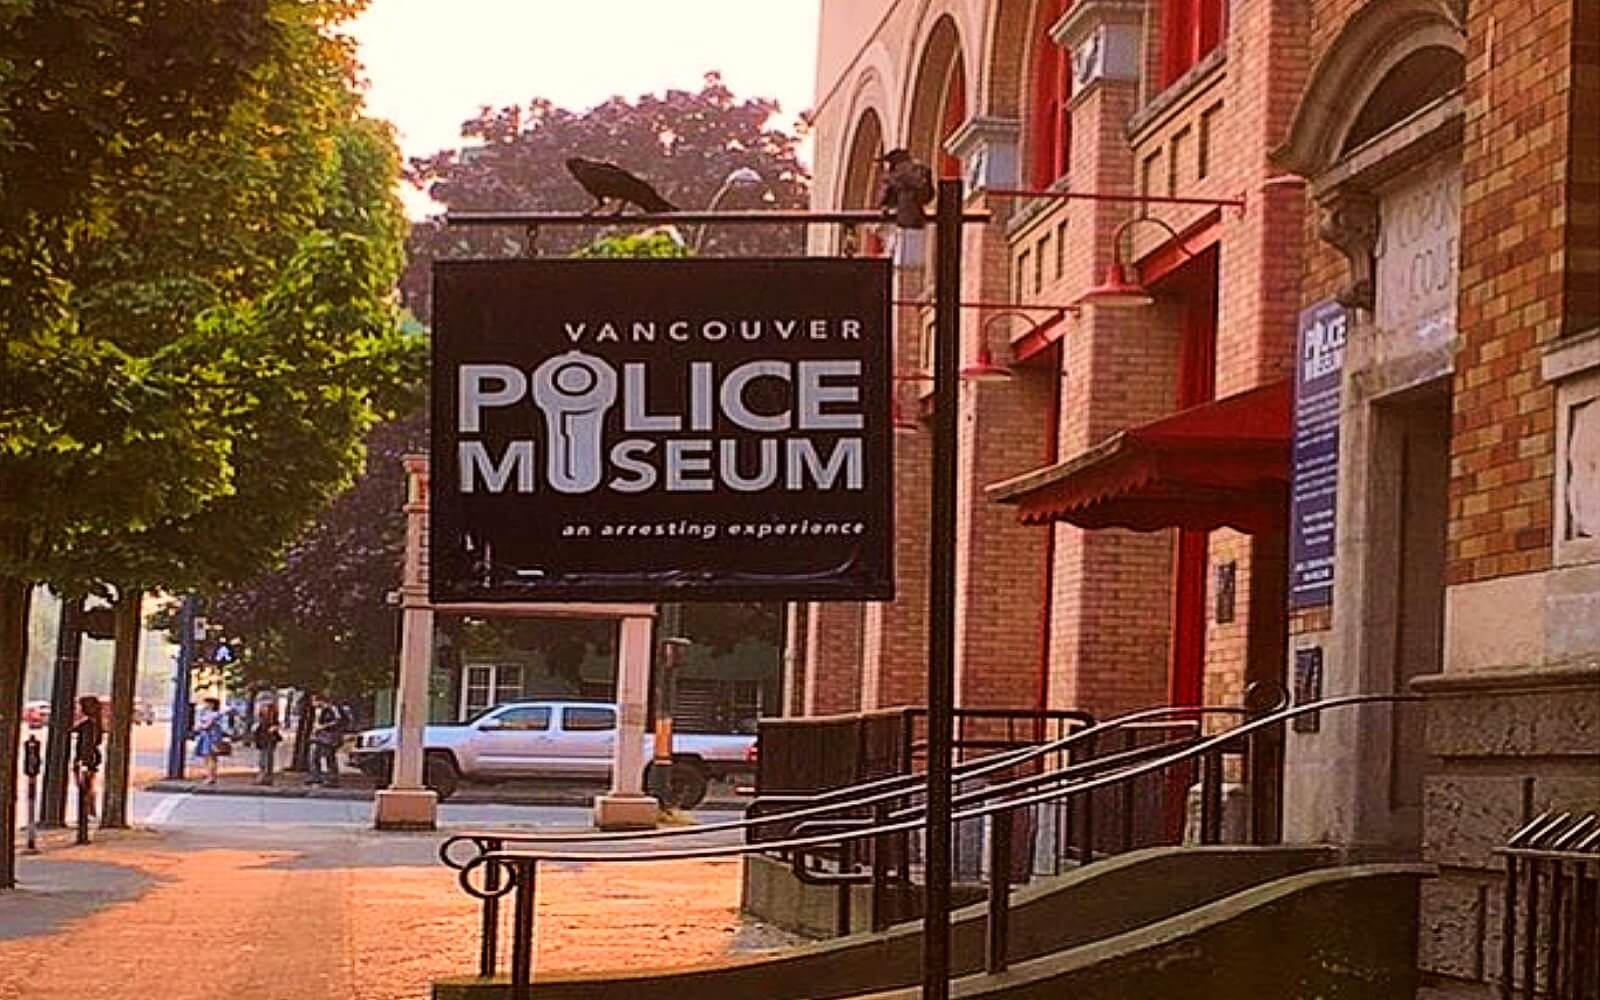 The front of the Vancouver Police Museum